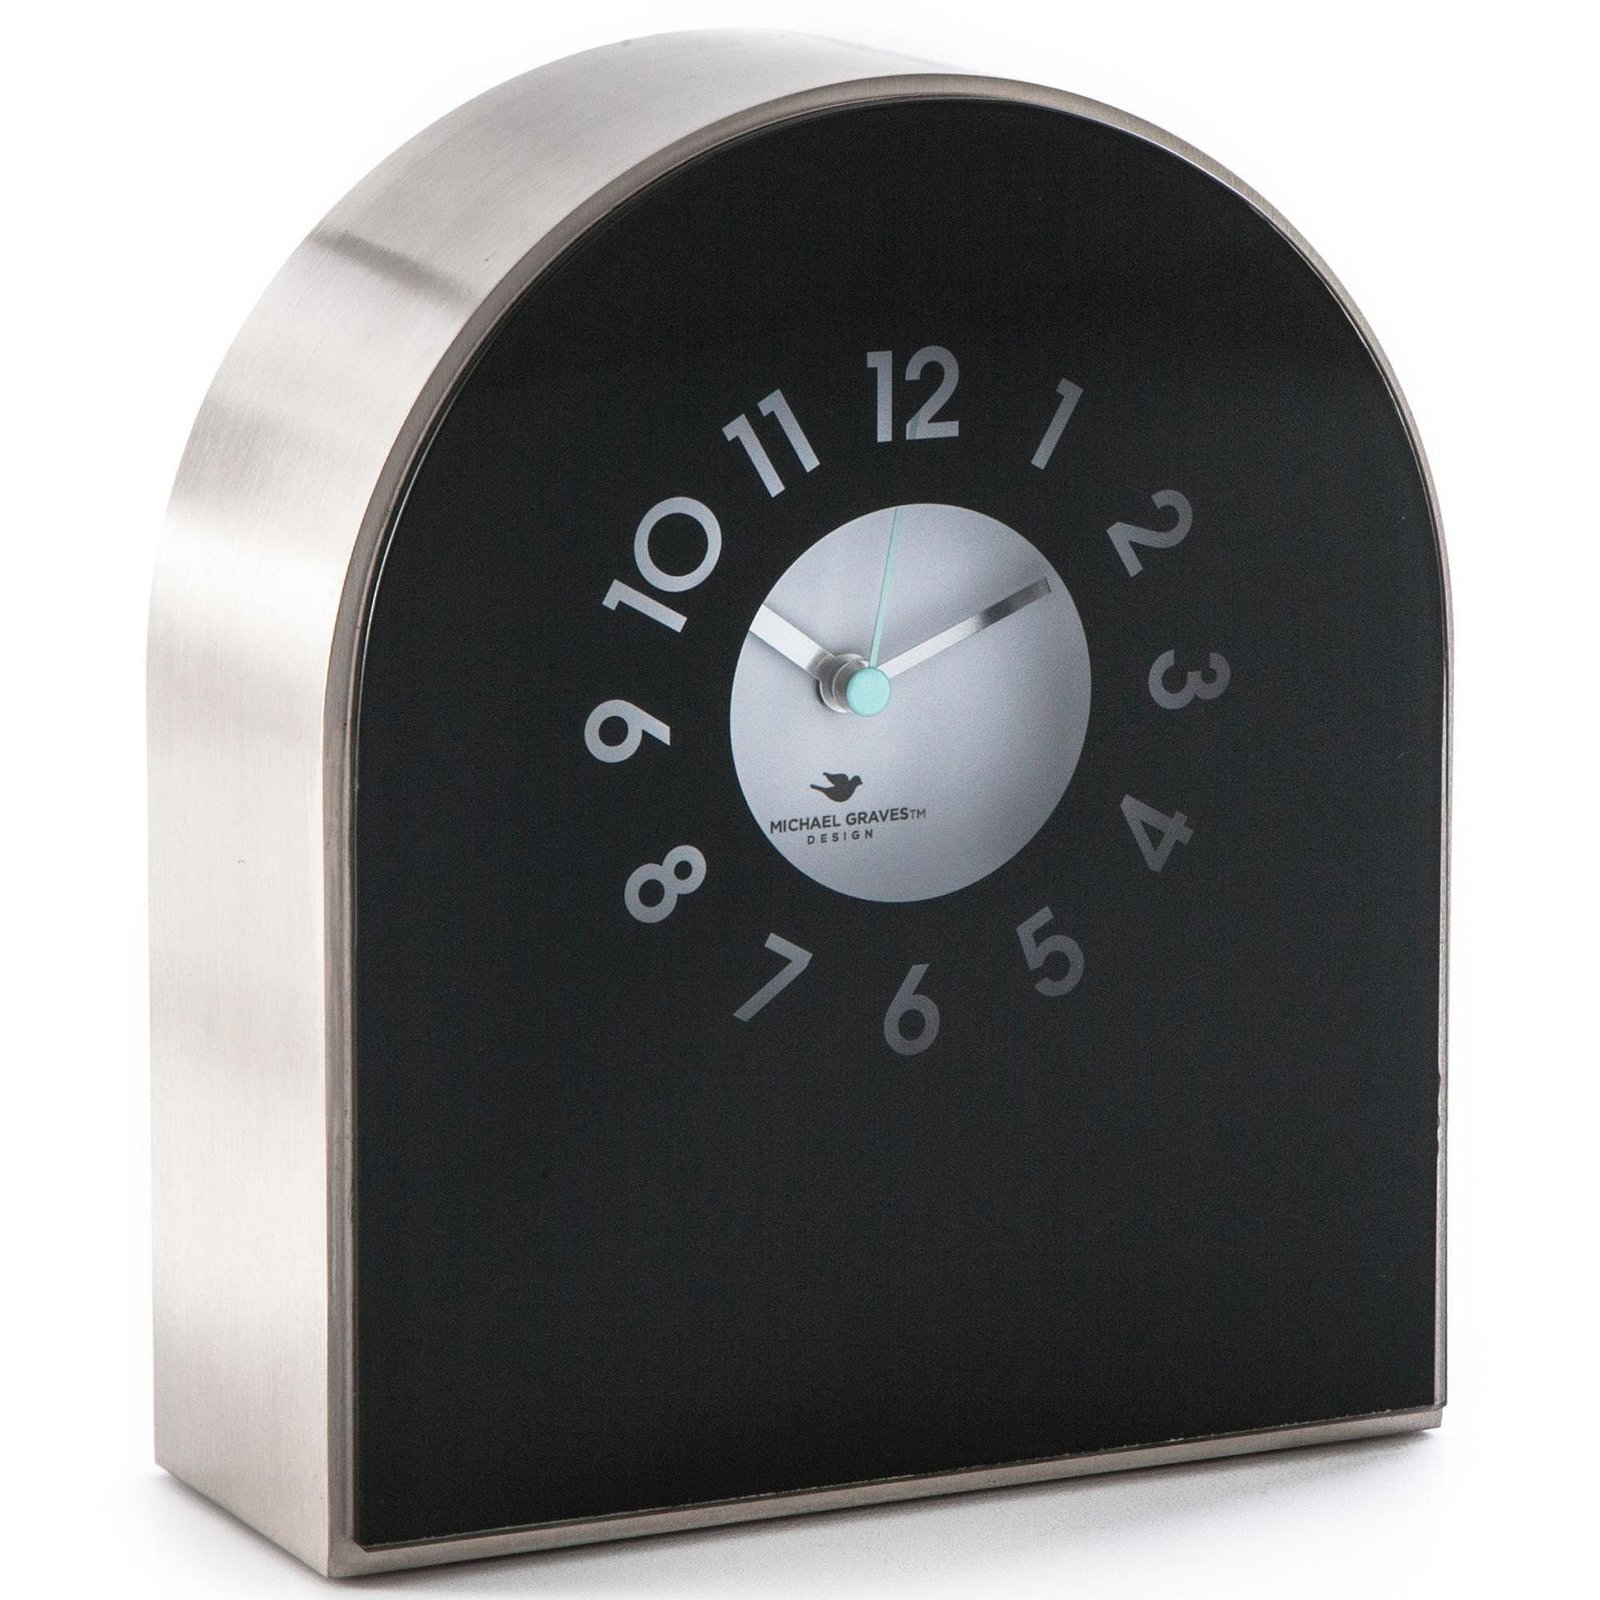 Michael Graves Design Black Glass Mantel Clock   $14.84